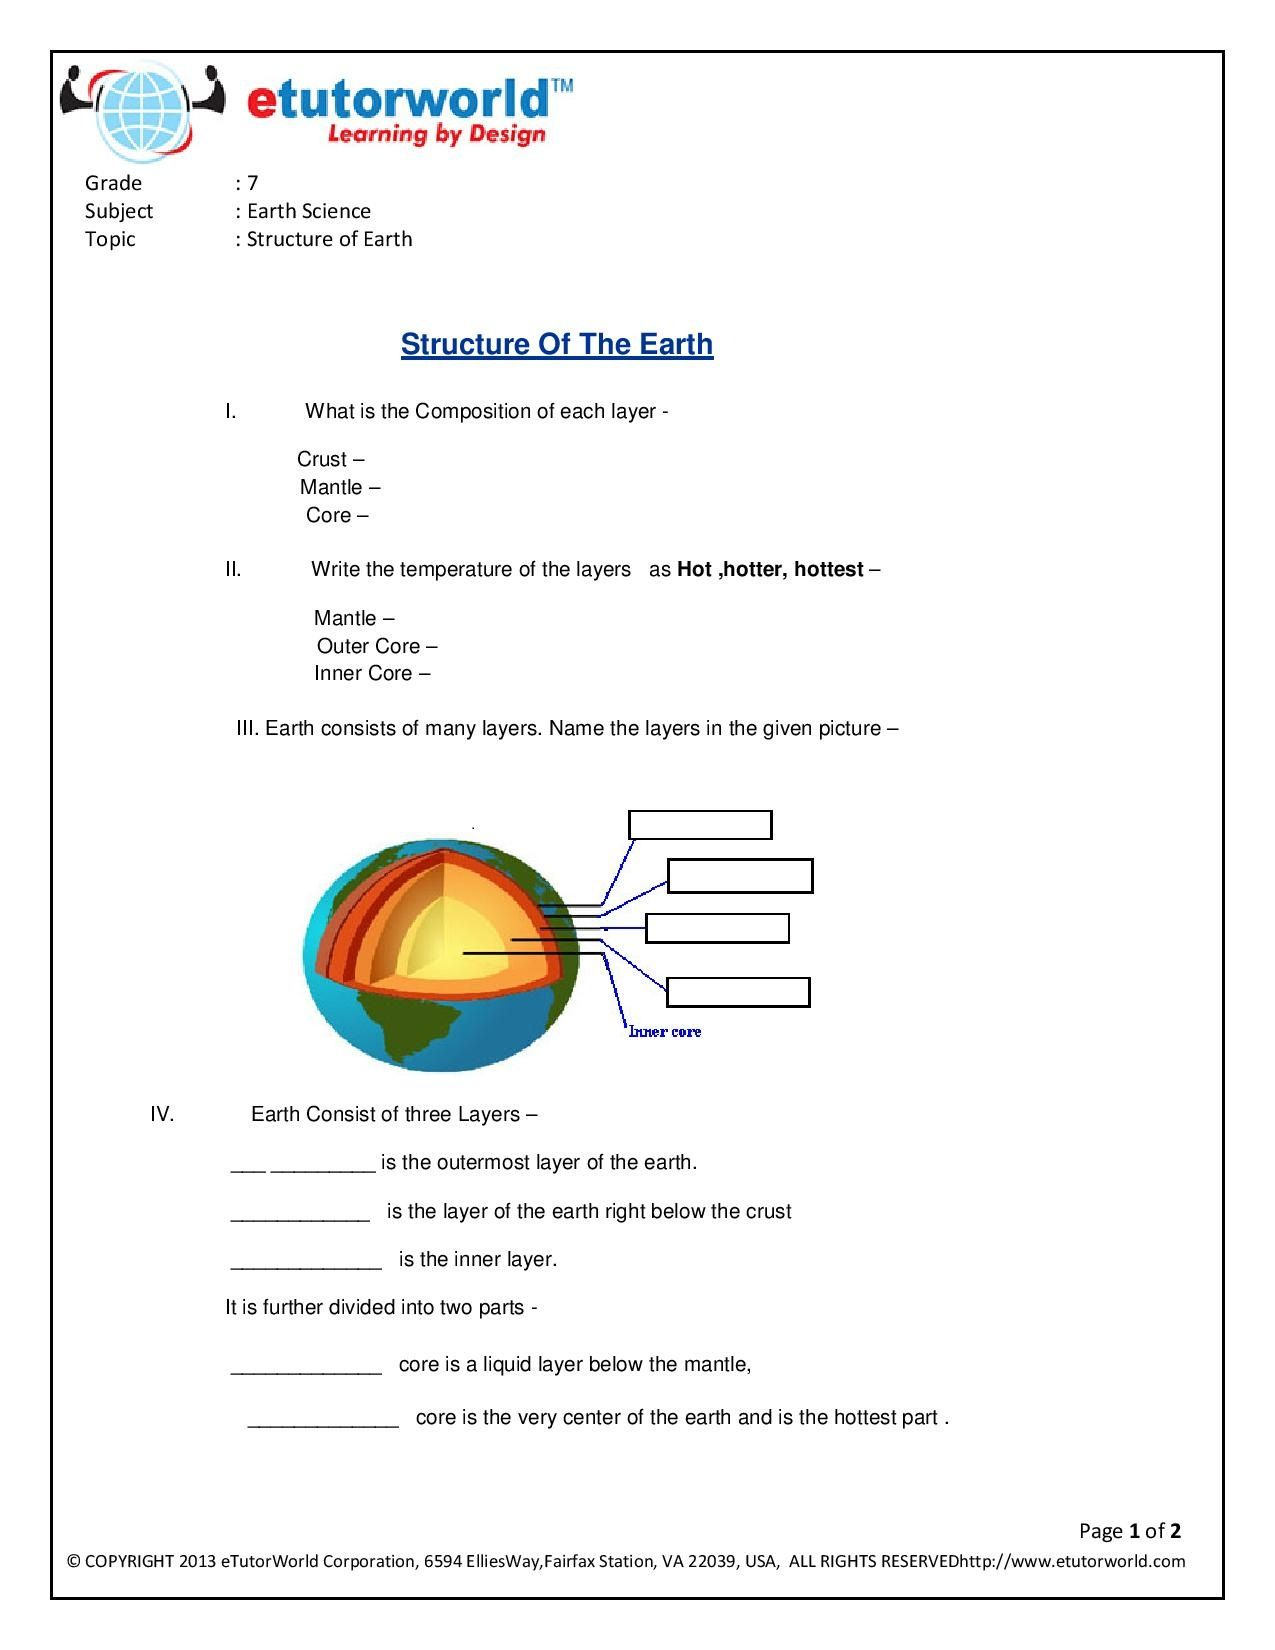 7th Grade Science Worksheets Get Pdf Science Worksheets Science Homework Help Etutorworld Science Worksheets 7th Grade Science Science Homework